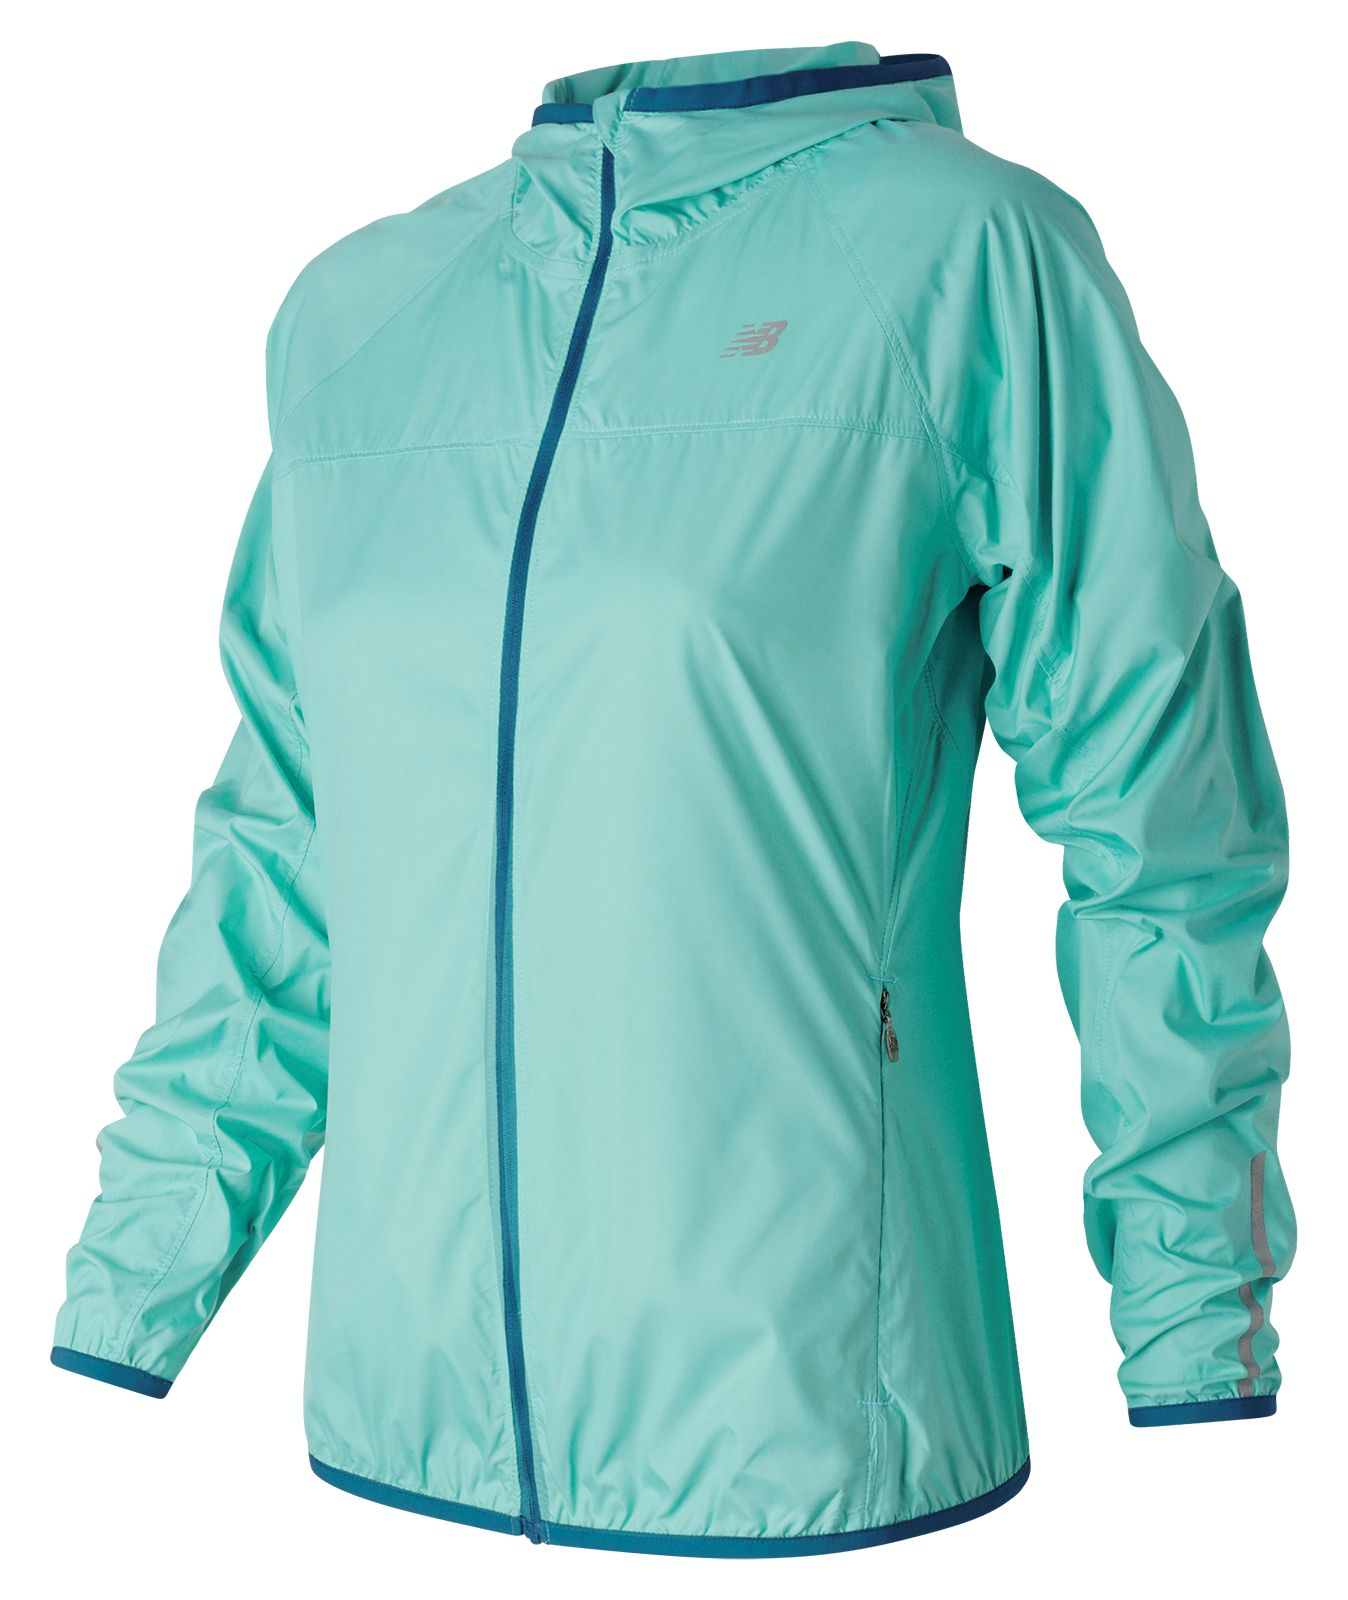 New Balance : Windcheater Jacket : Women's Apparel : WJ53111AQU